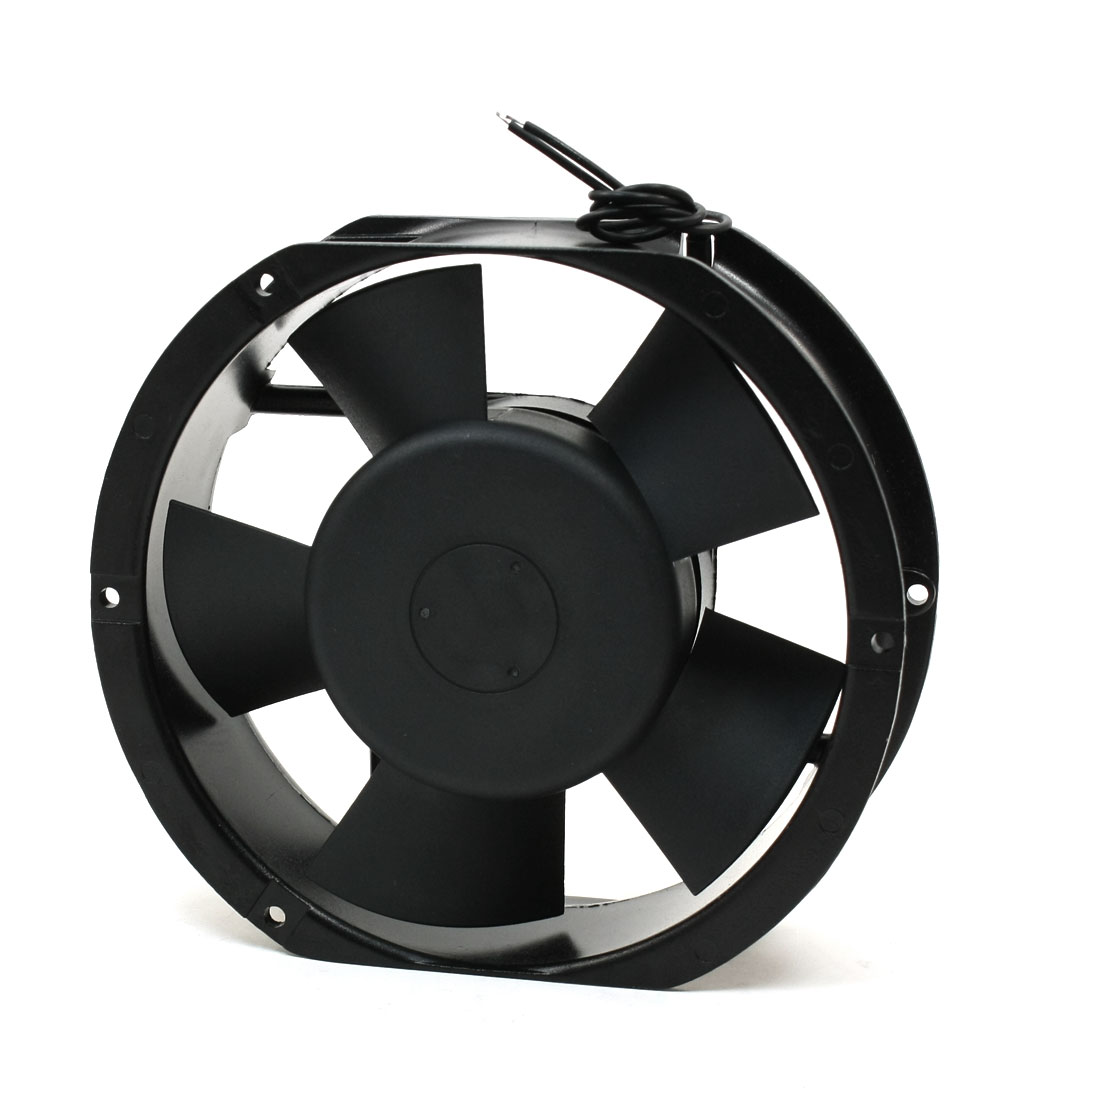 AC-220-240V-0-22A-150-x-175mm-Axial-Cooling-Fan-Industrial-Blower